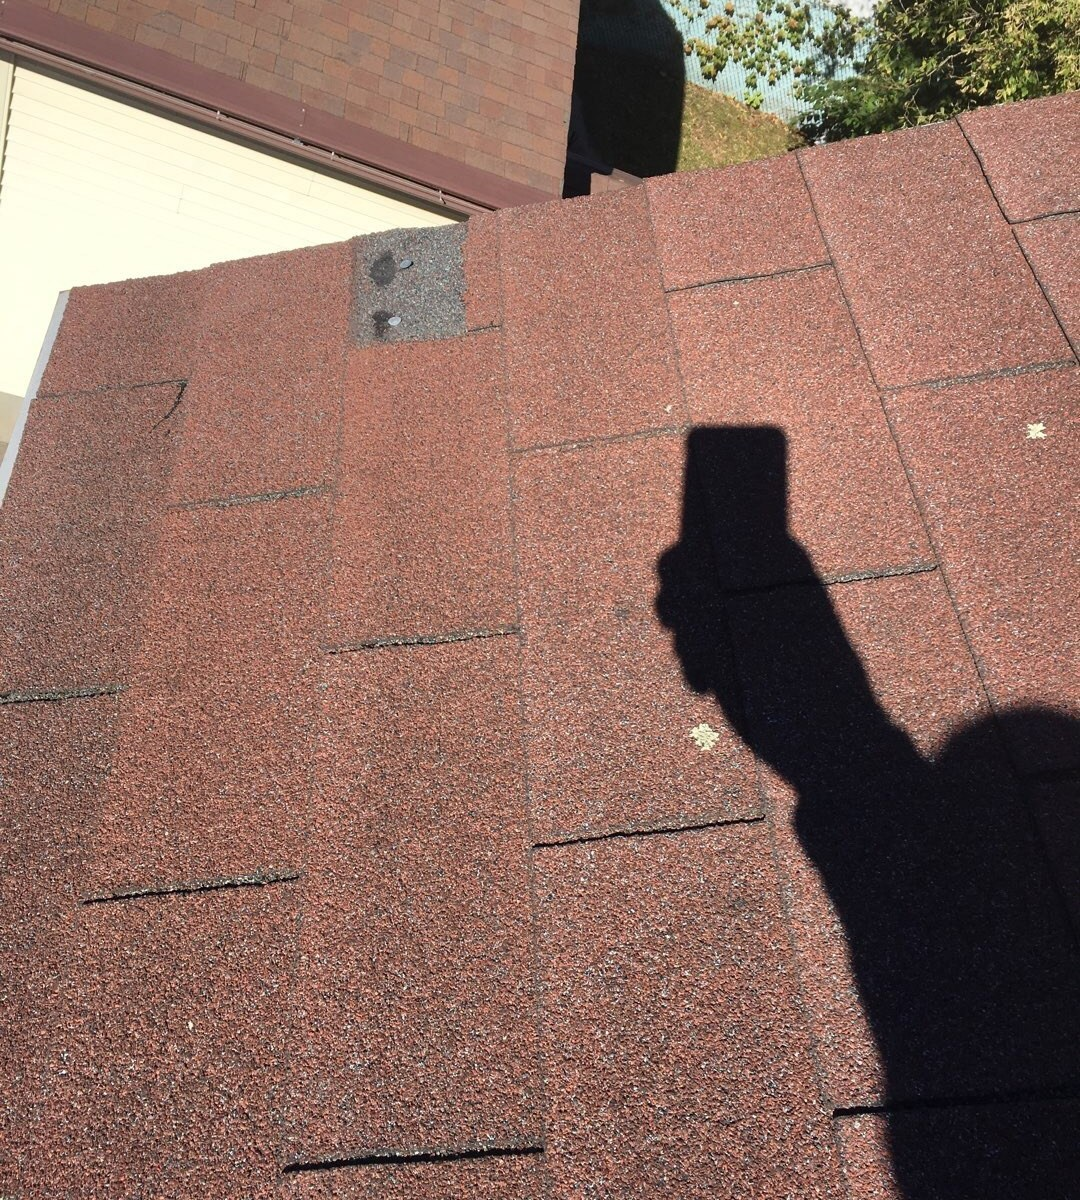 Wind or Storm Damaged Roof Insurance Claim Experts 268-7075